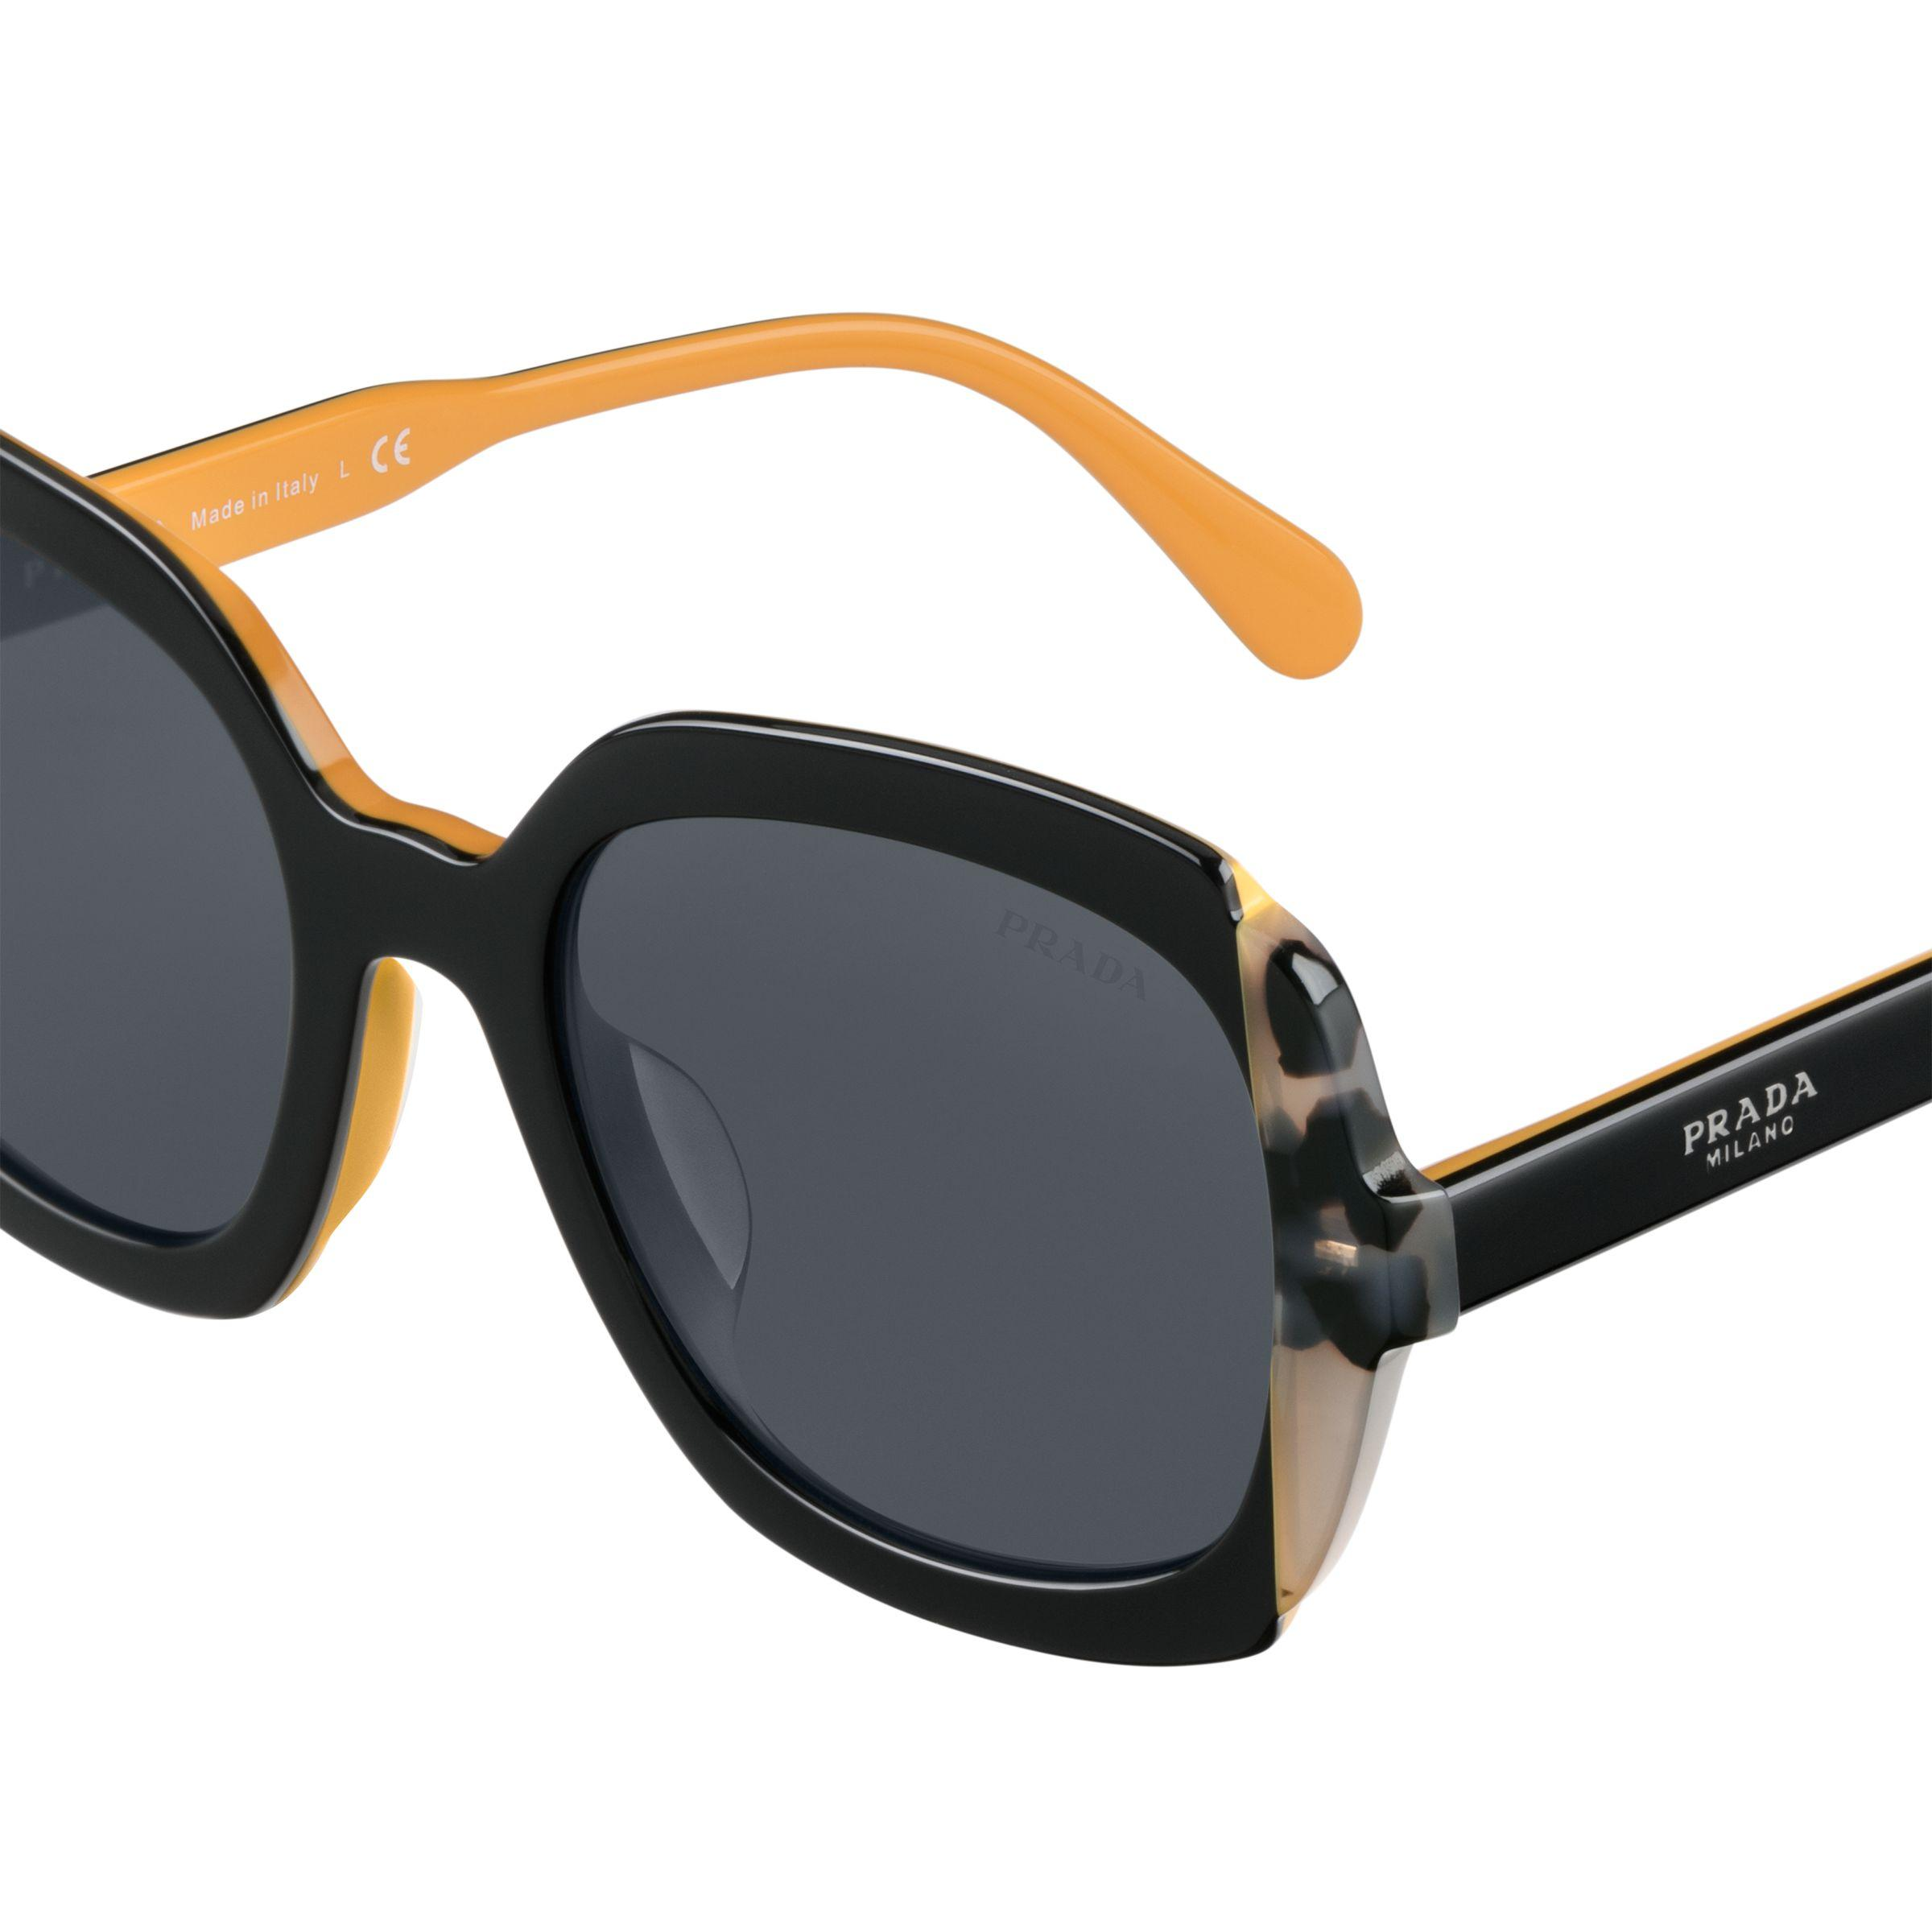 e8227ba5121 Prada - Black Eyewear Collection Alternative Fit - Lyst. View fullscreen